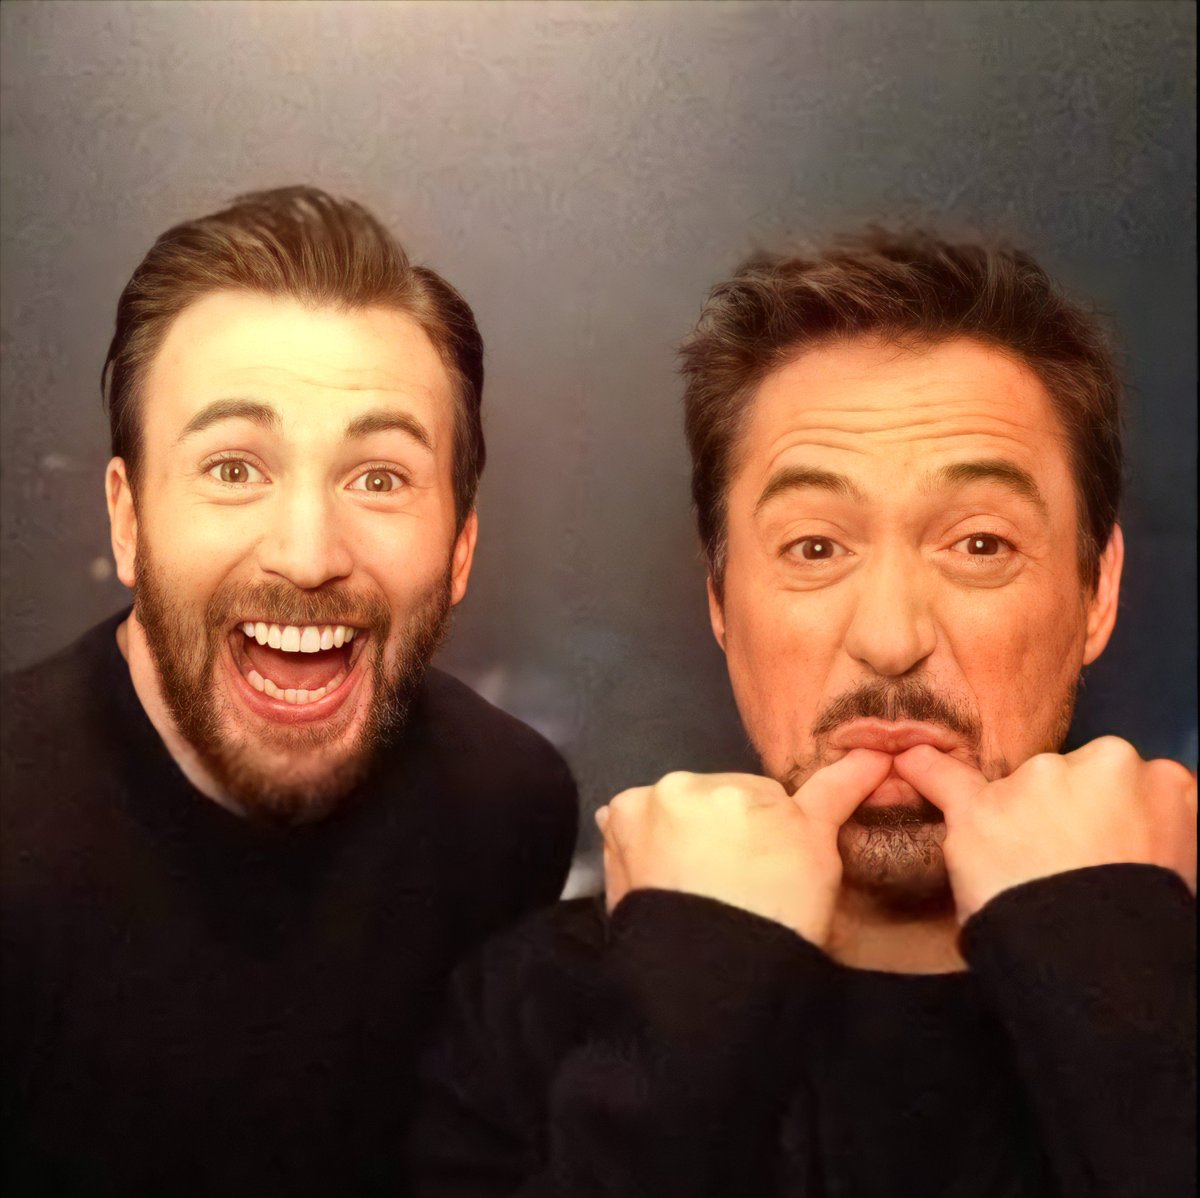 Robert Downey Jr and Chris Evans selling soup at Jimmy Kimmel Live.